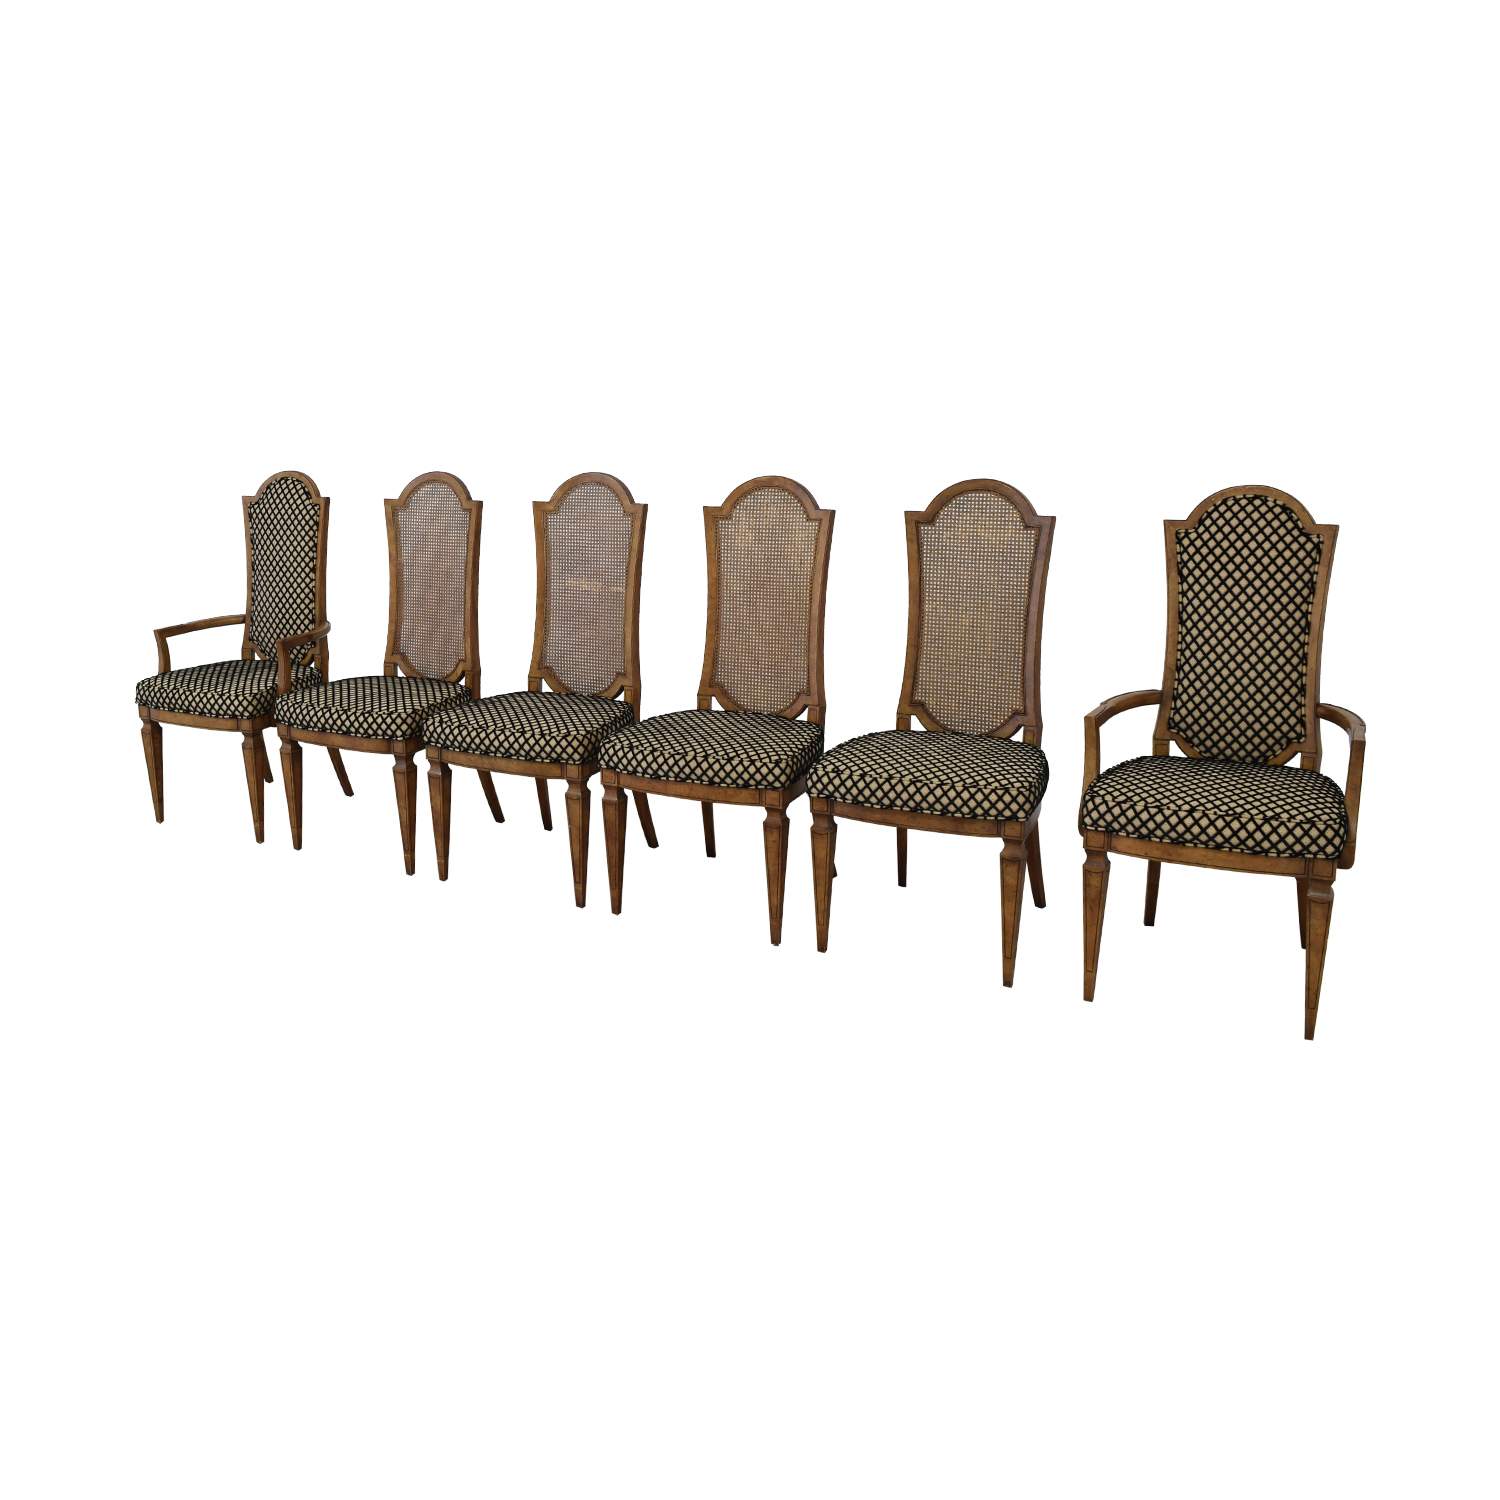 Mastercraft Furniture Mastercraft Furniture Patterned Dining Chairs Chairs